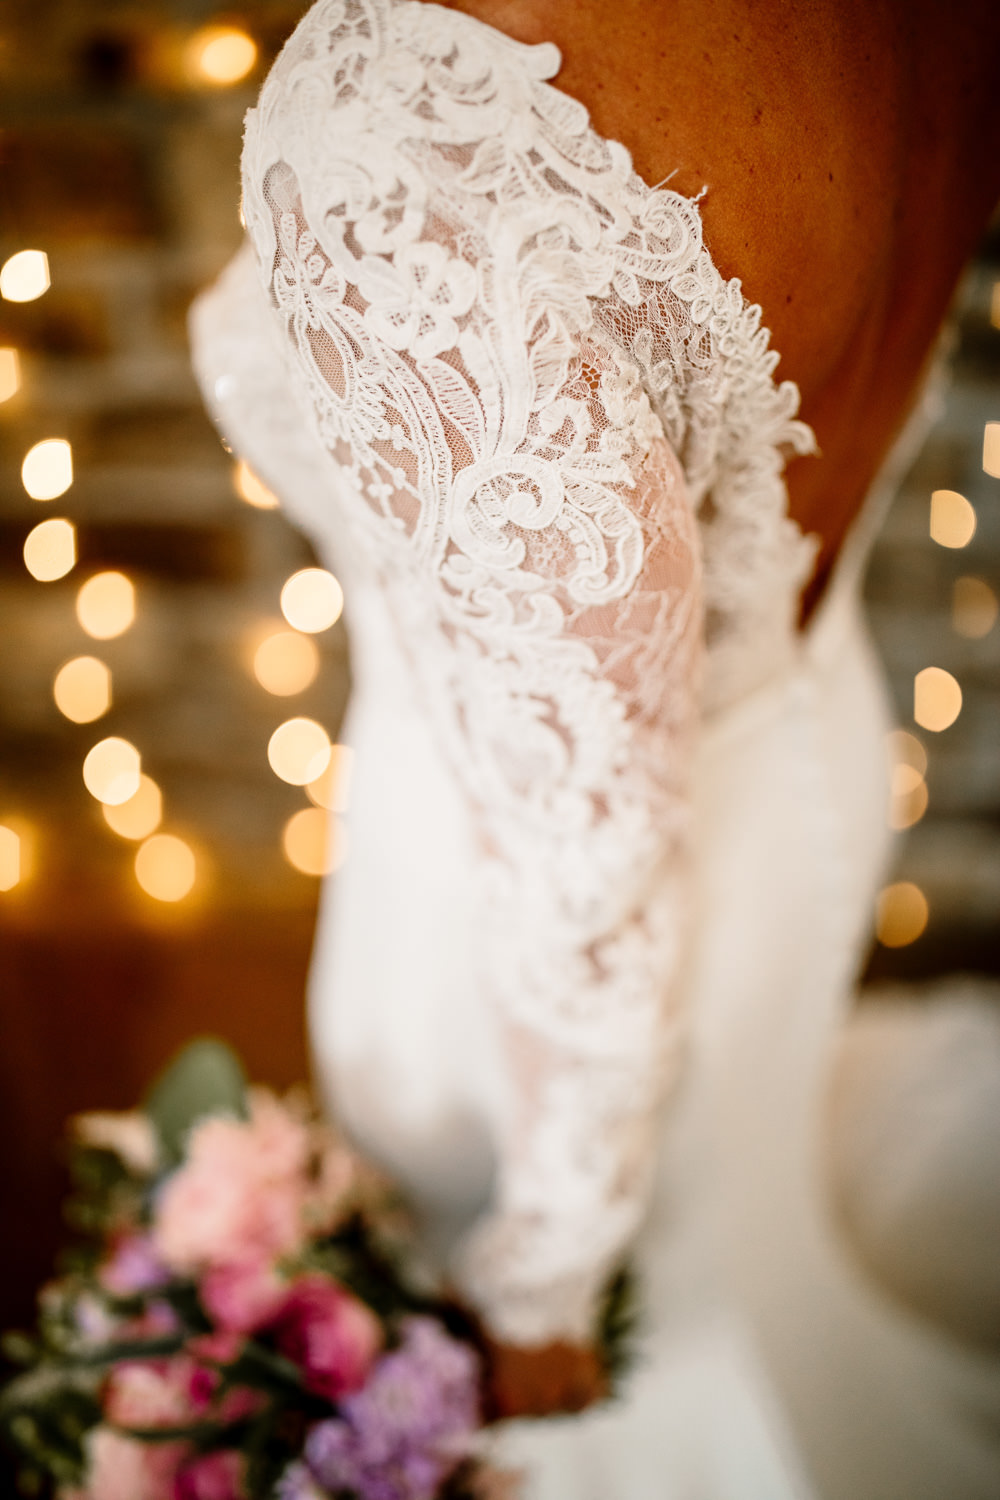 Bride Bridal Dress Gow Lace Long Sleeves Low Back Blossom Barn Wedding Ideas Hayley Baxter Photography